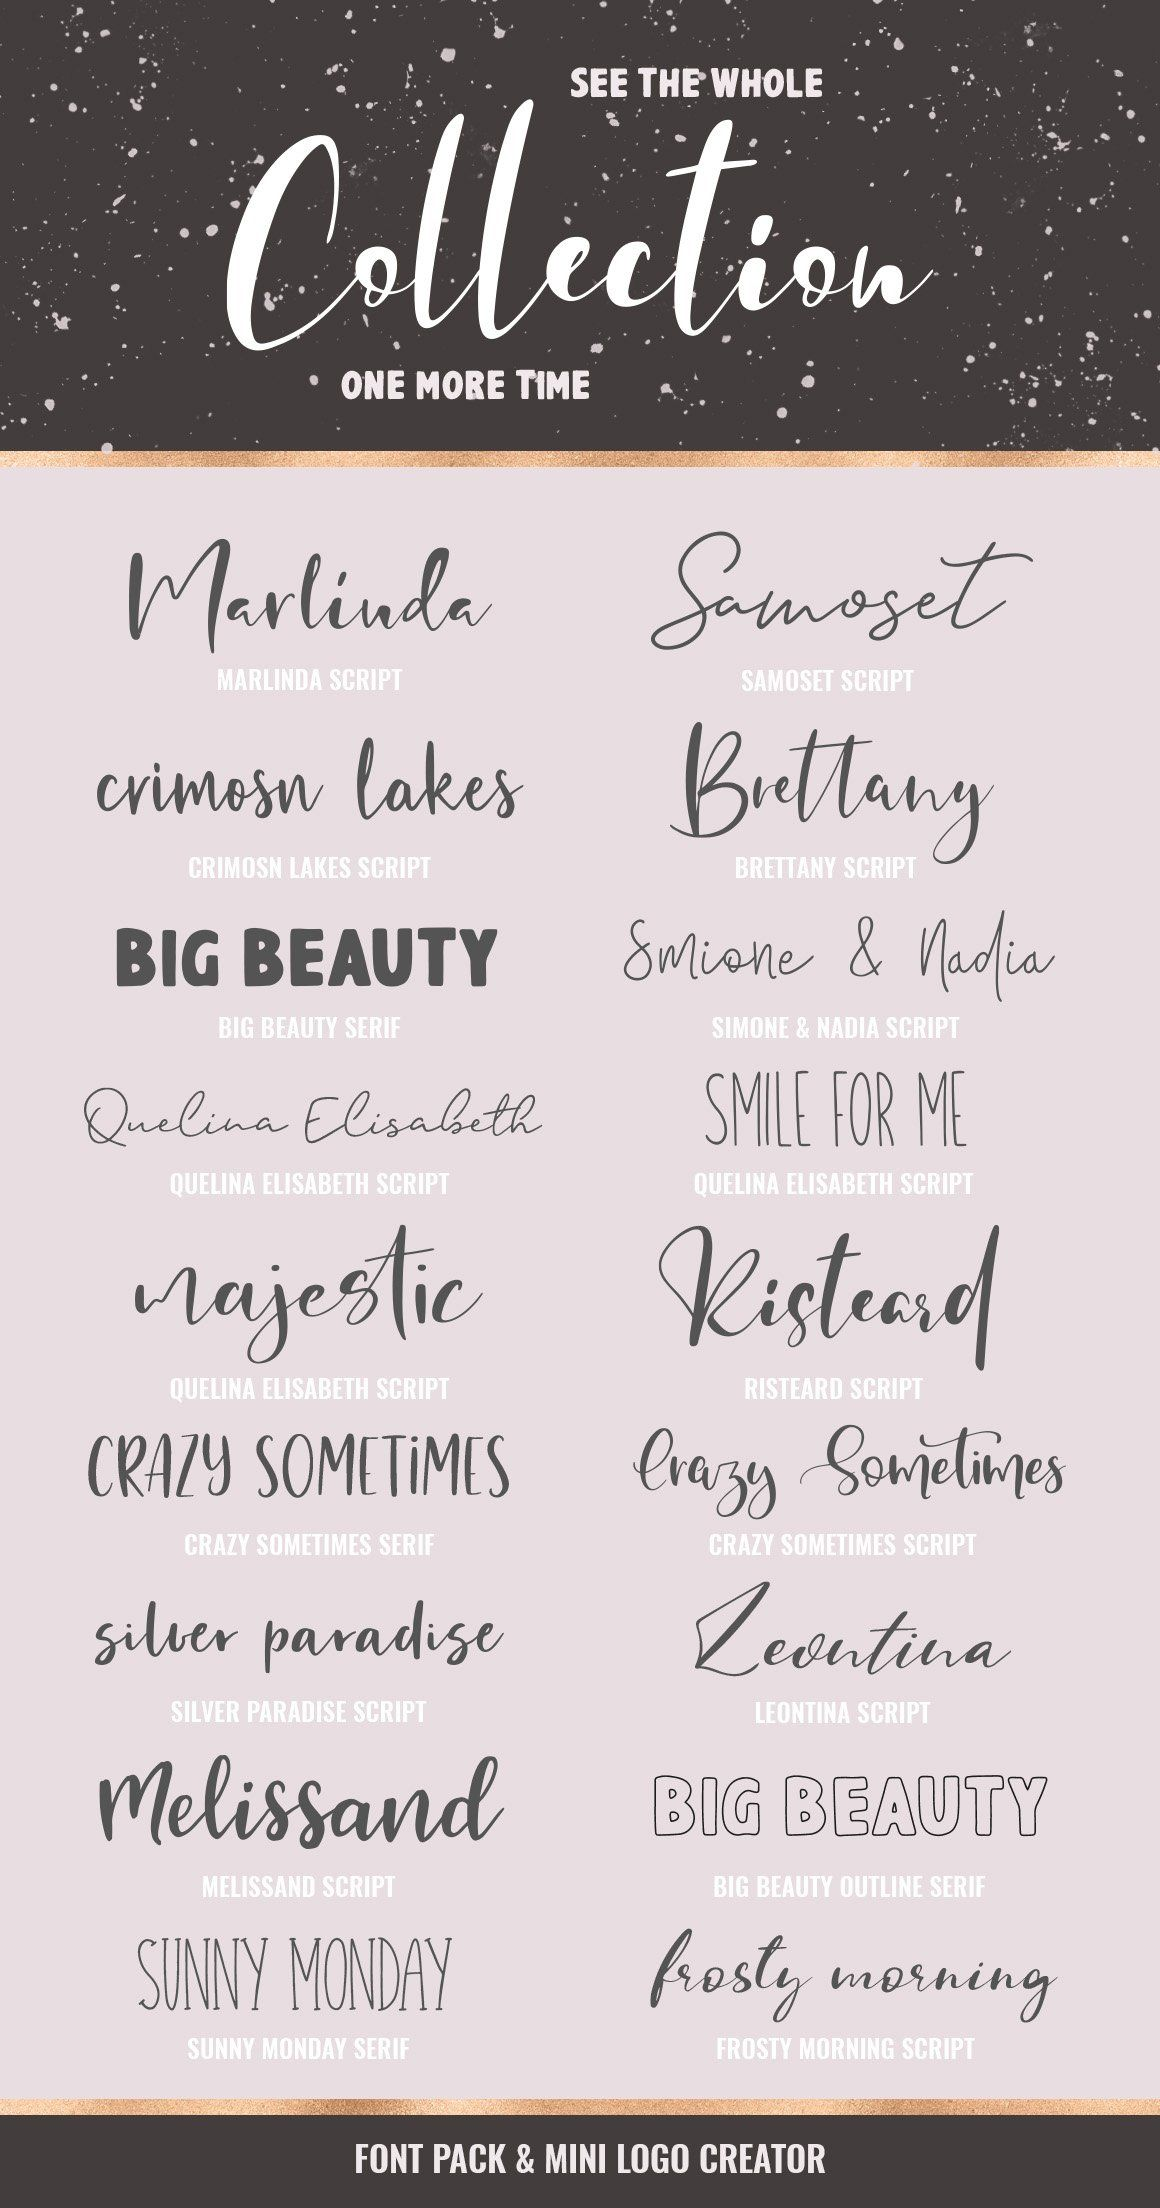 Download Font Pack & Mini Logo Creator | Aesthetic fonts, Lettering ...